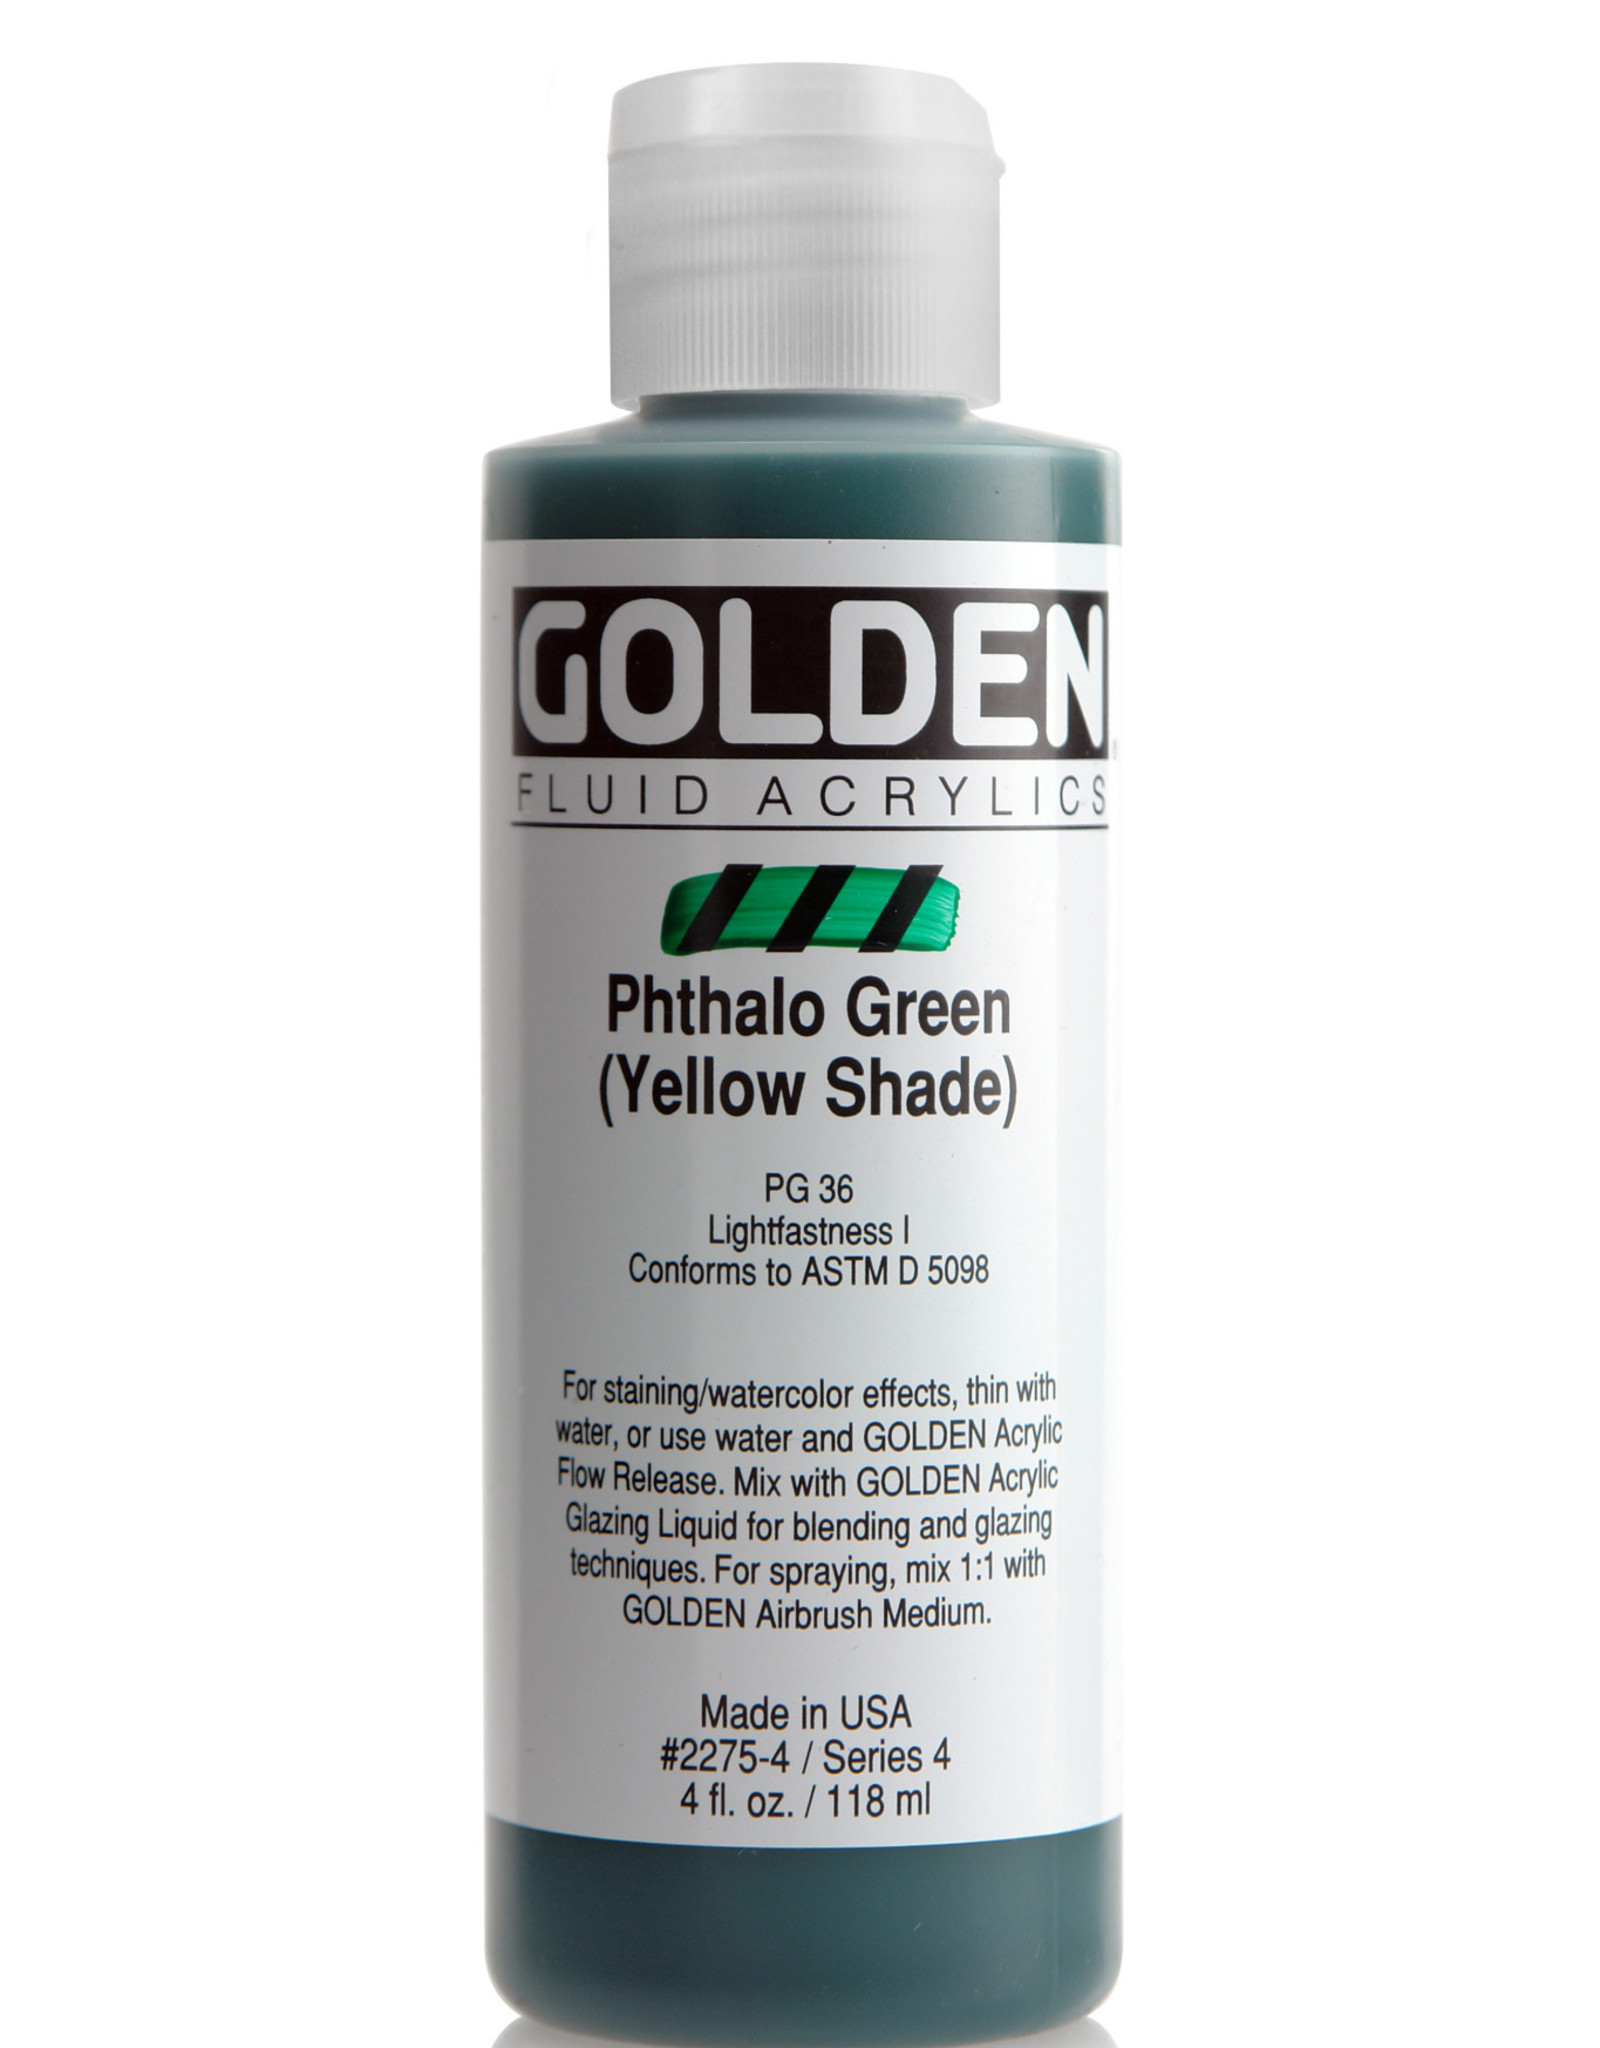 Golden Fluid Acrylic Paint, Phthalo Green (Yellow Shade), Series 4, 4fl.oz, Bottle